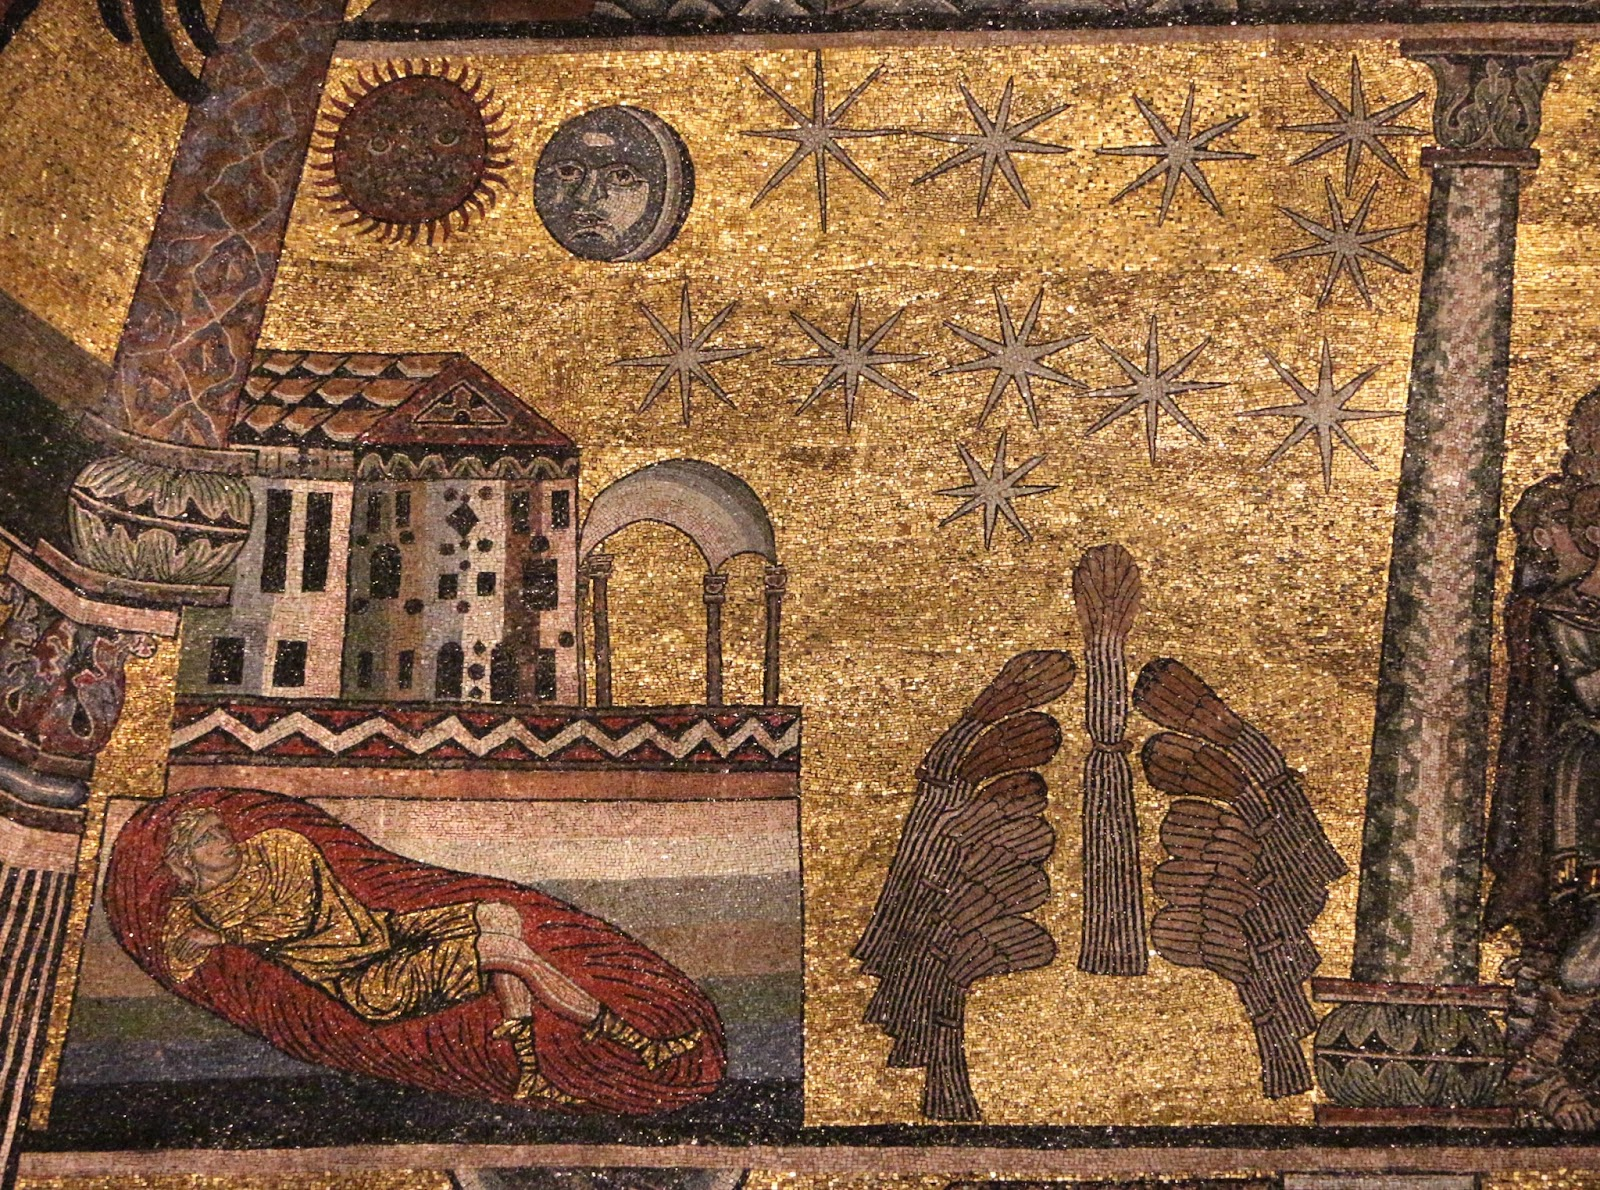 Josephs Dreams Of The Heavenly Bodies And Sheaves Wheat Genesis 37 6 11 Florence Baptistery Ca 1225 Image From Wikimedia Commons By Sailko